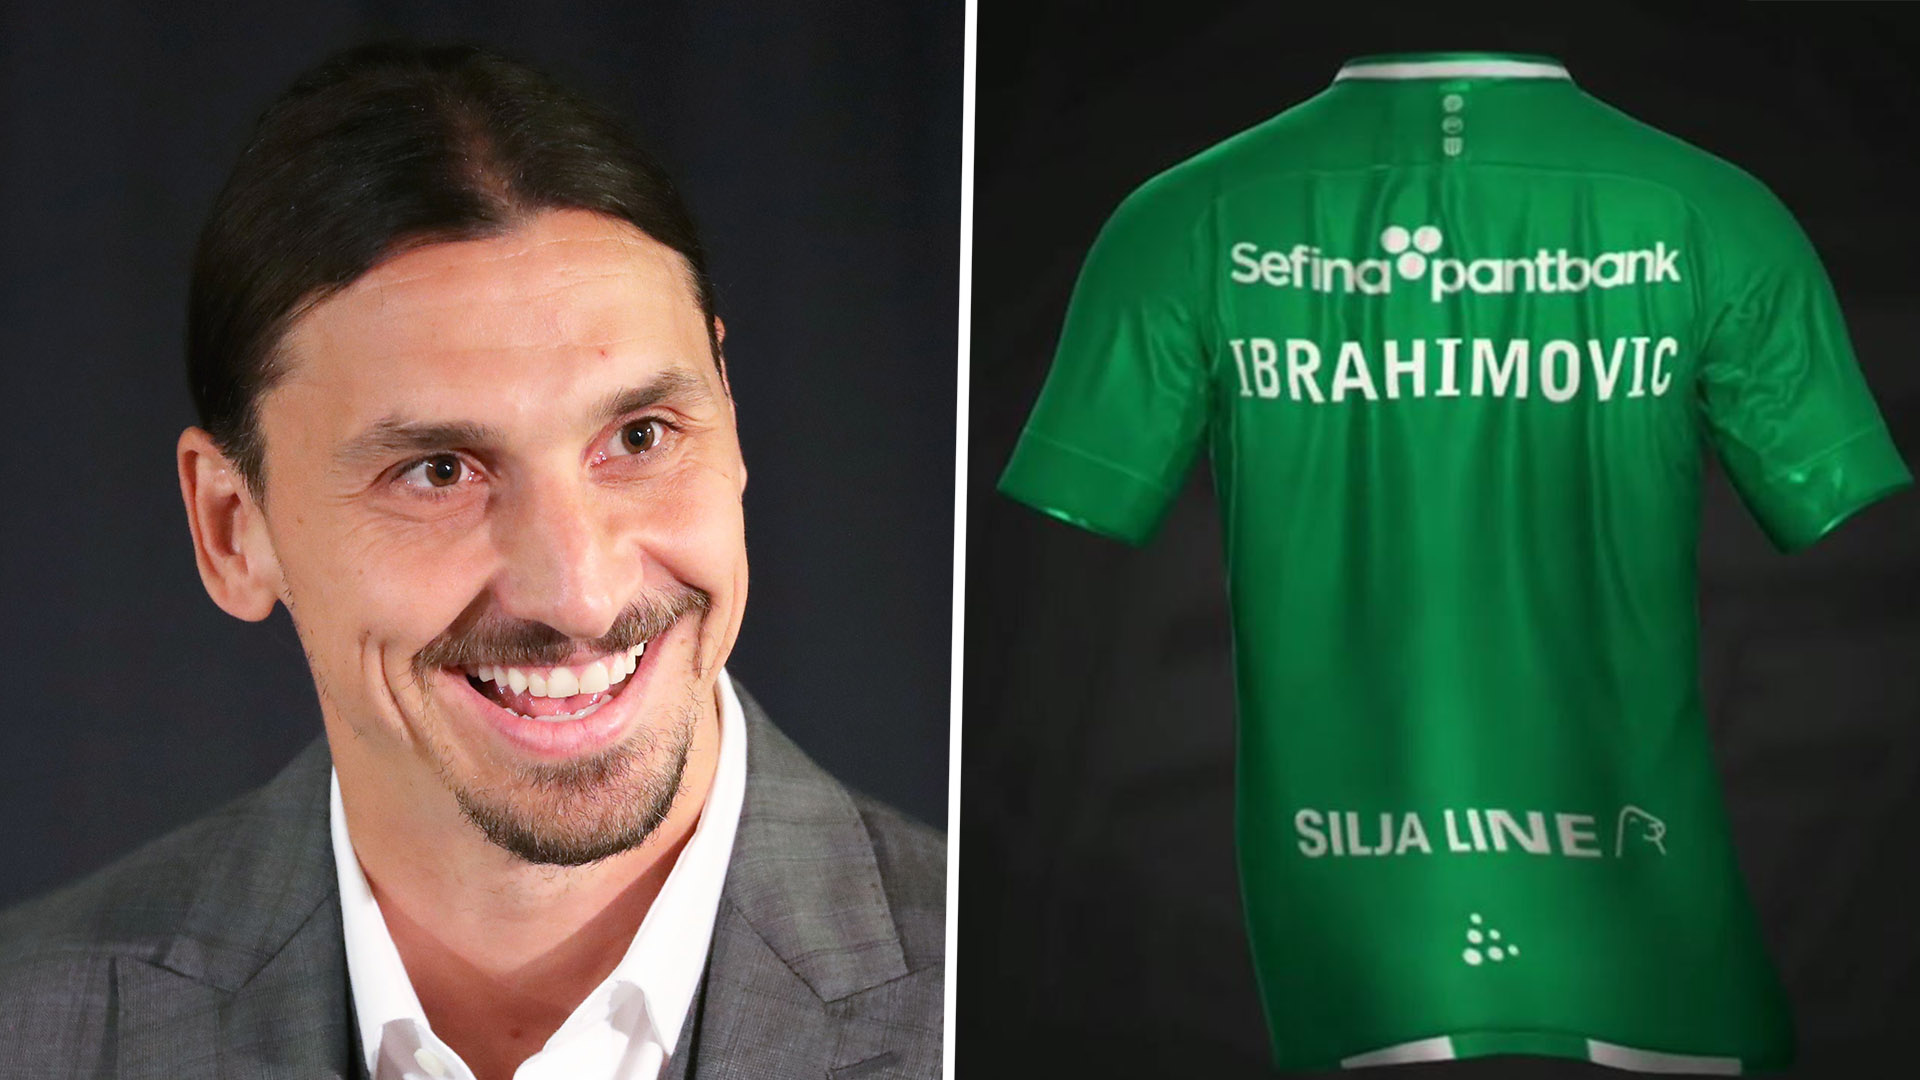 Zlatan Ibrahimovic becomes co-owner of Swedish club Hammarby